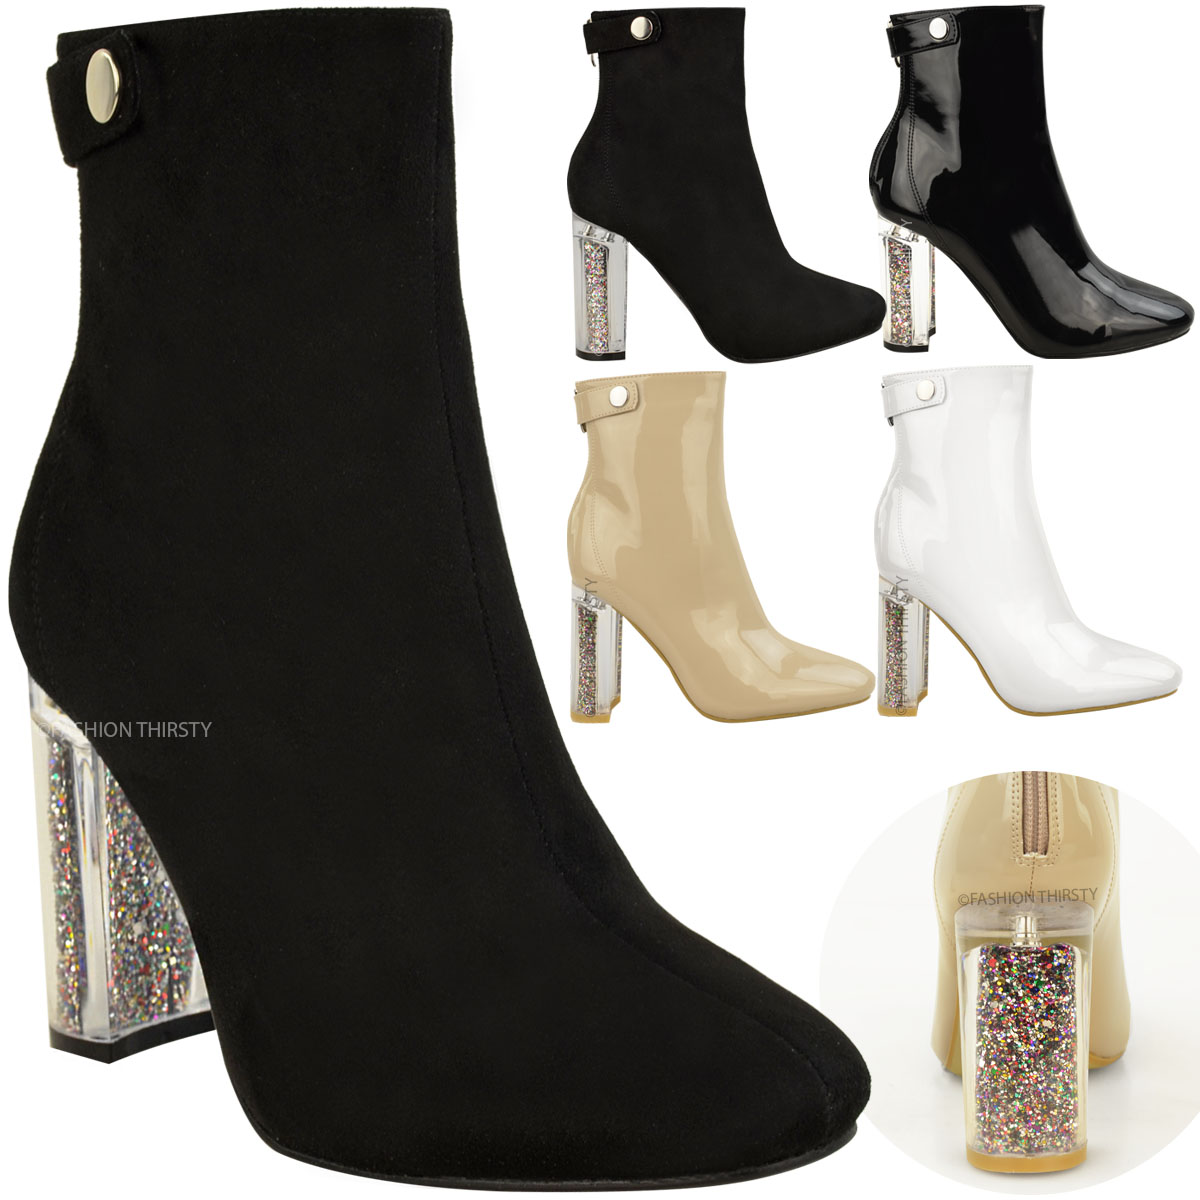 Innovative Black High Heel Ankle Boots Outfit  Shoes Mod